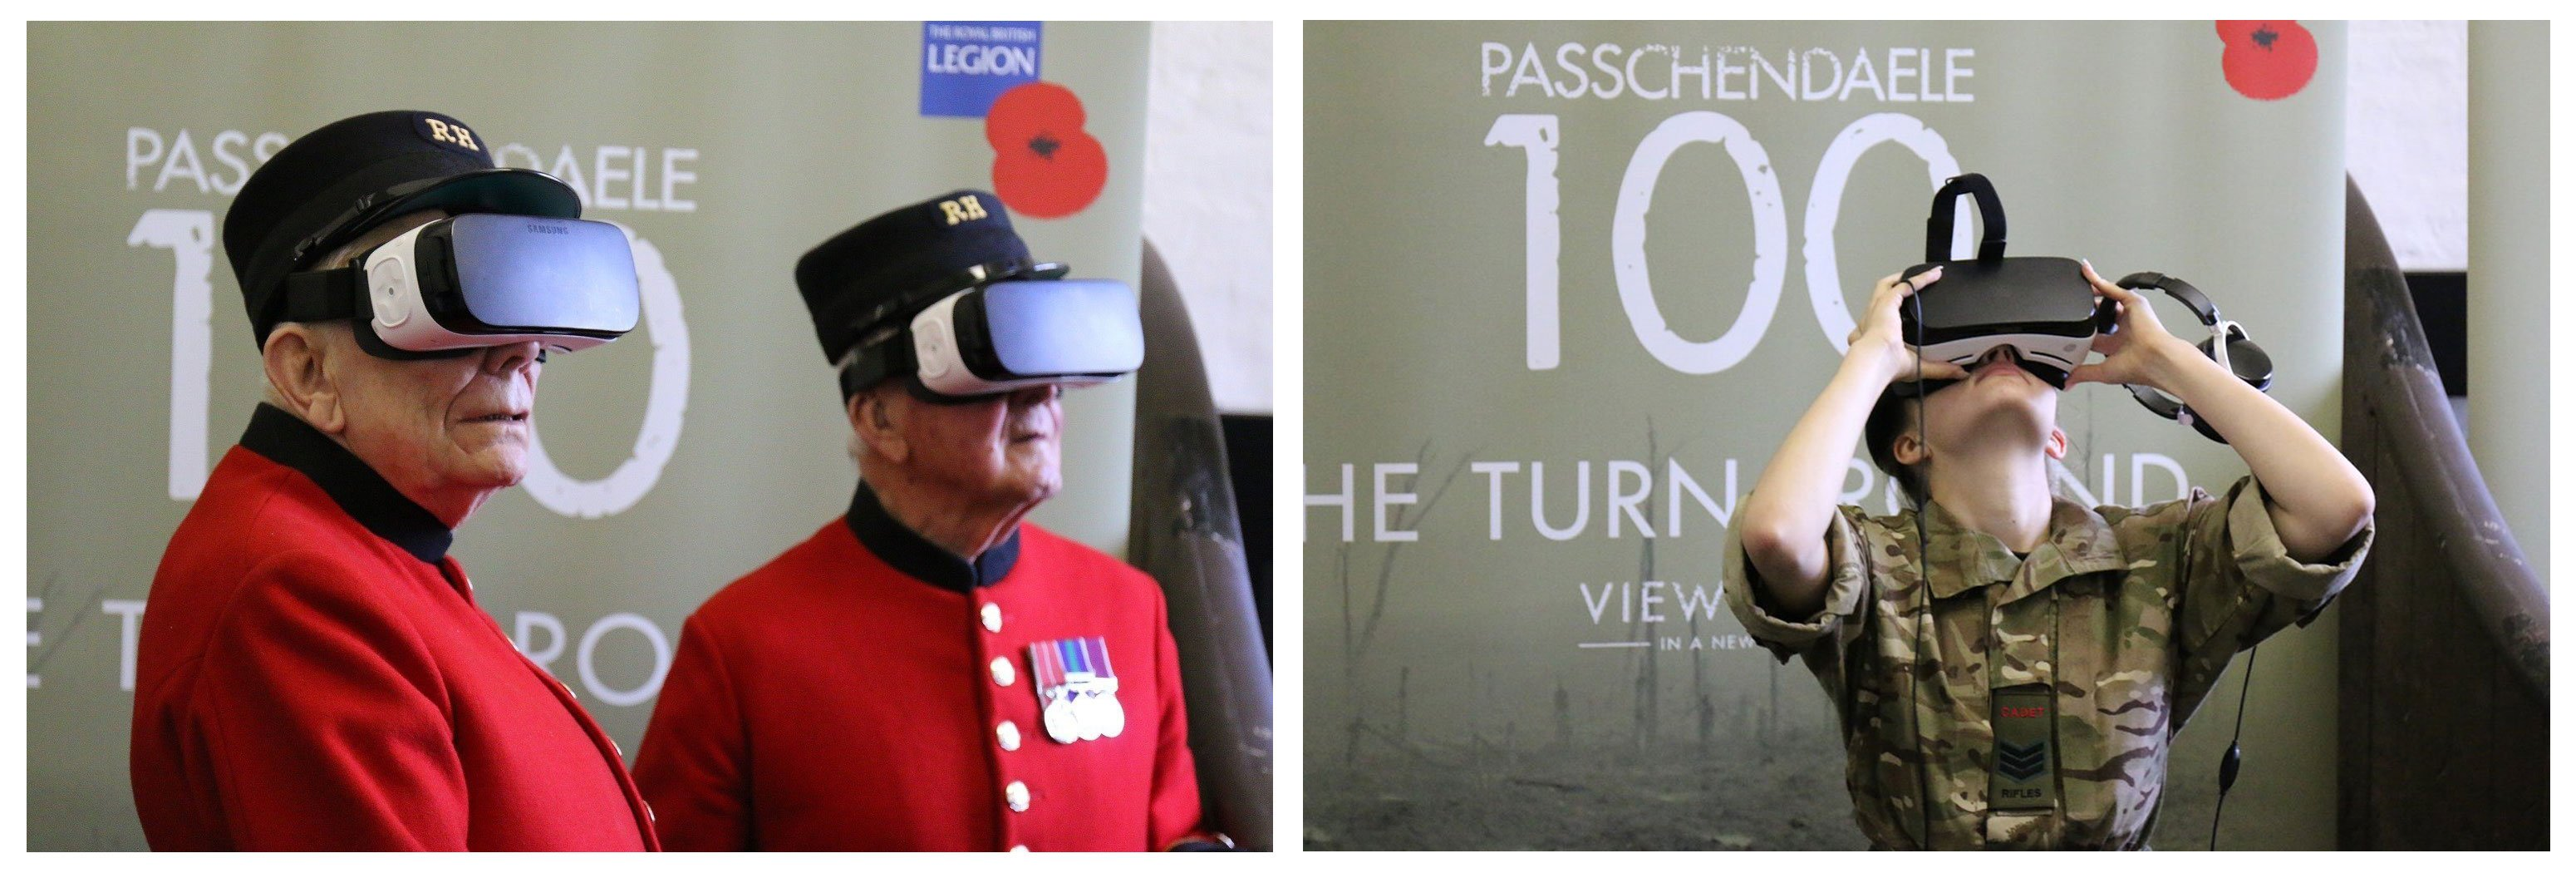 Two images of people using virtual reality masks to view an immersive experience commemorating the Battle of Passchendaele